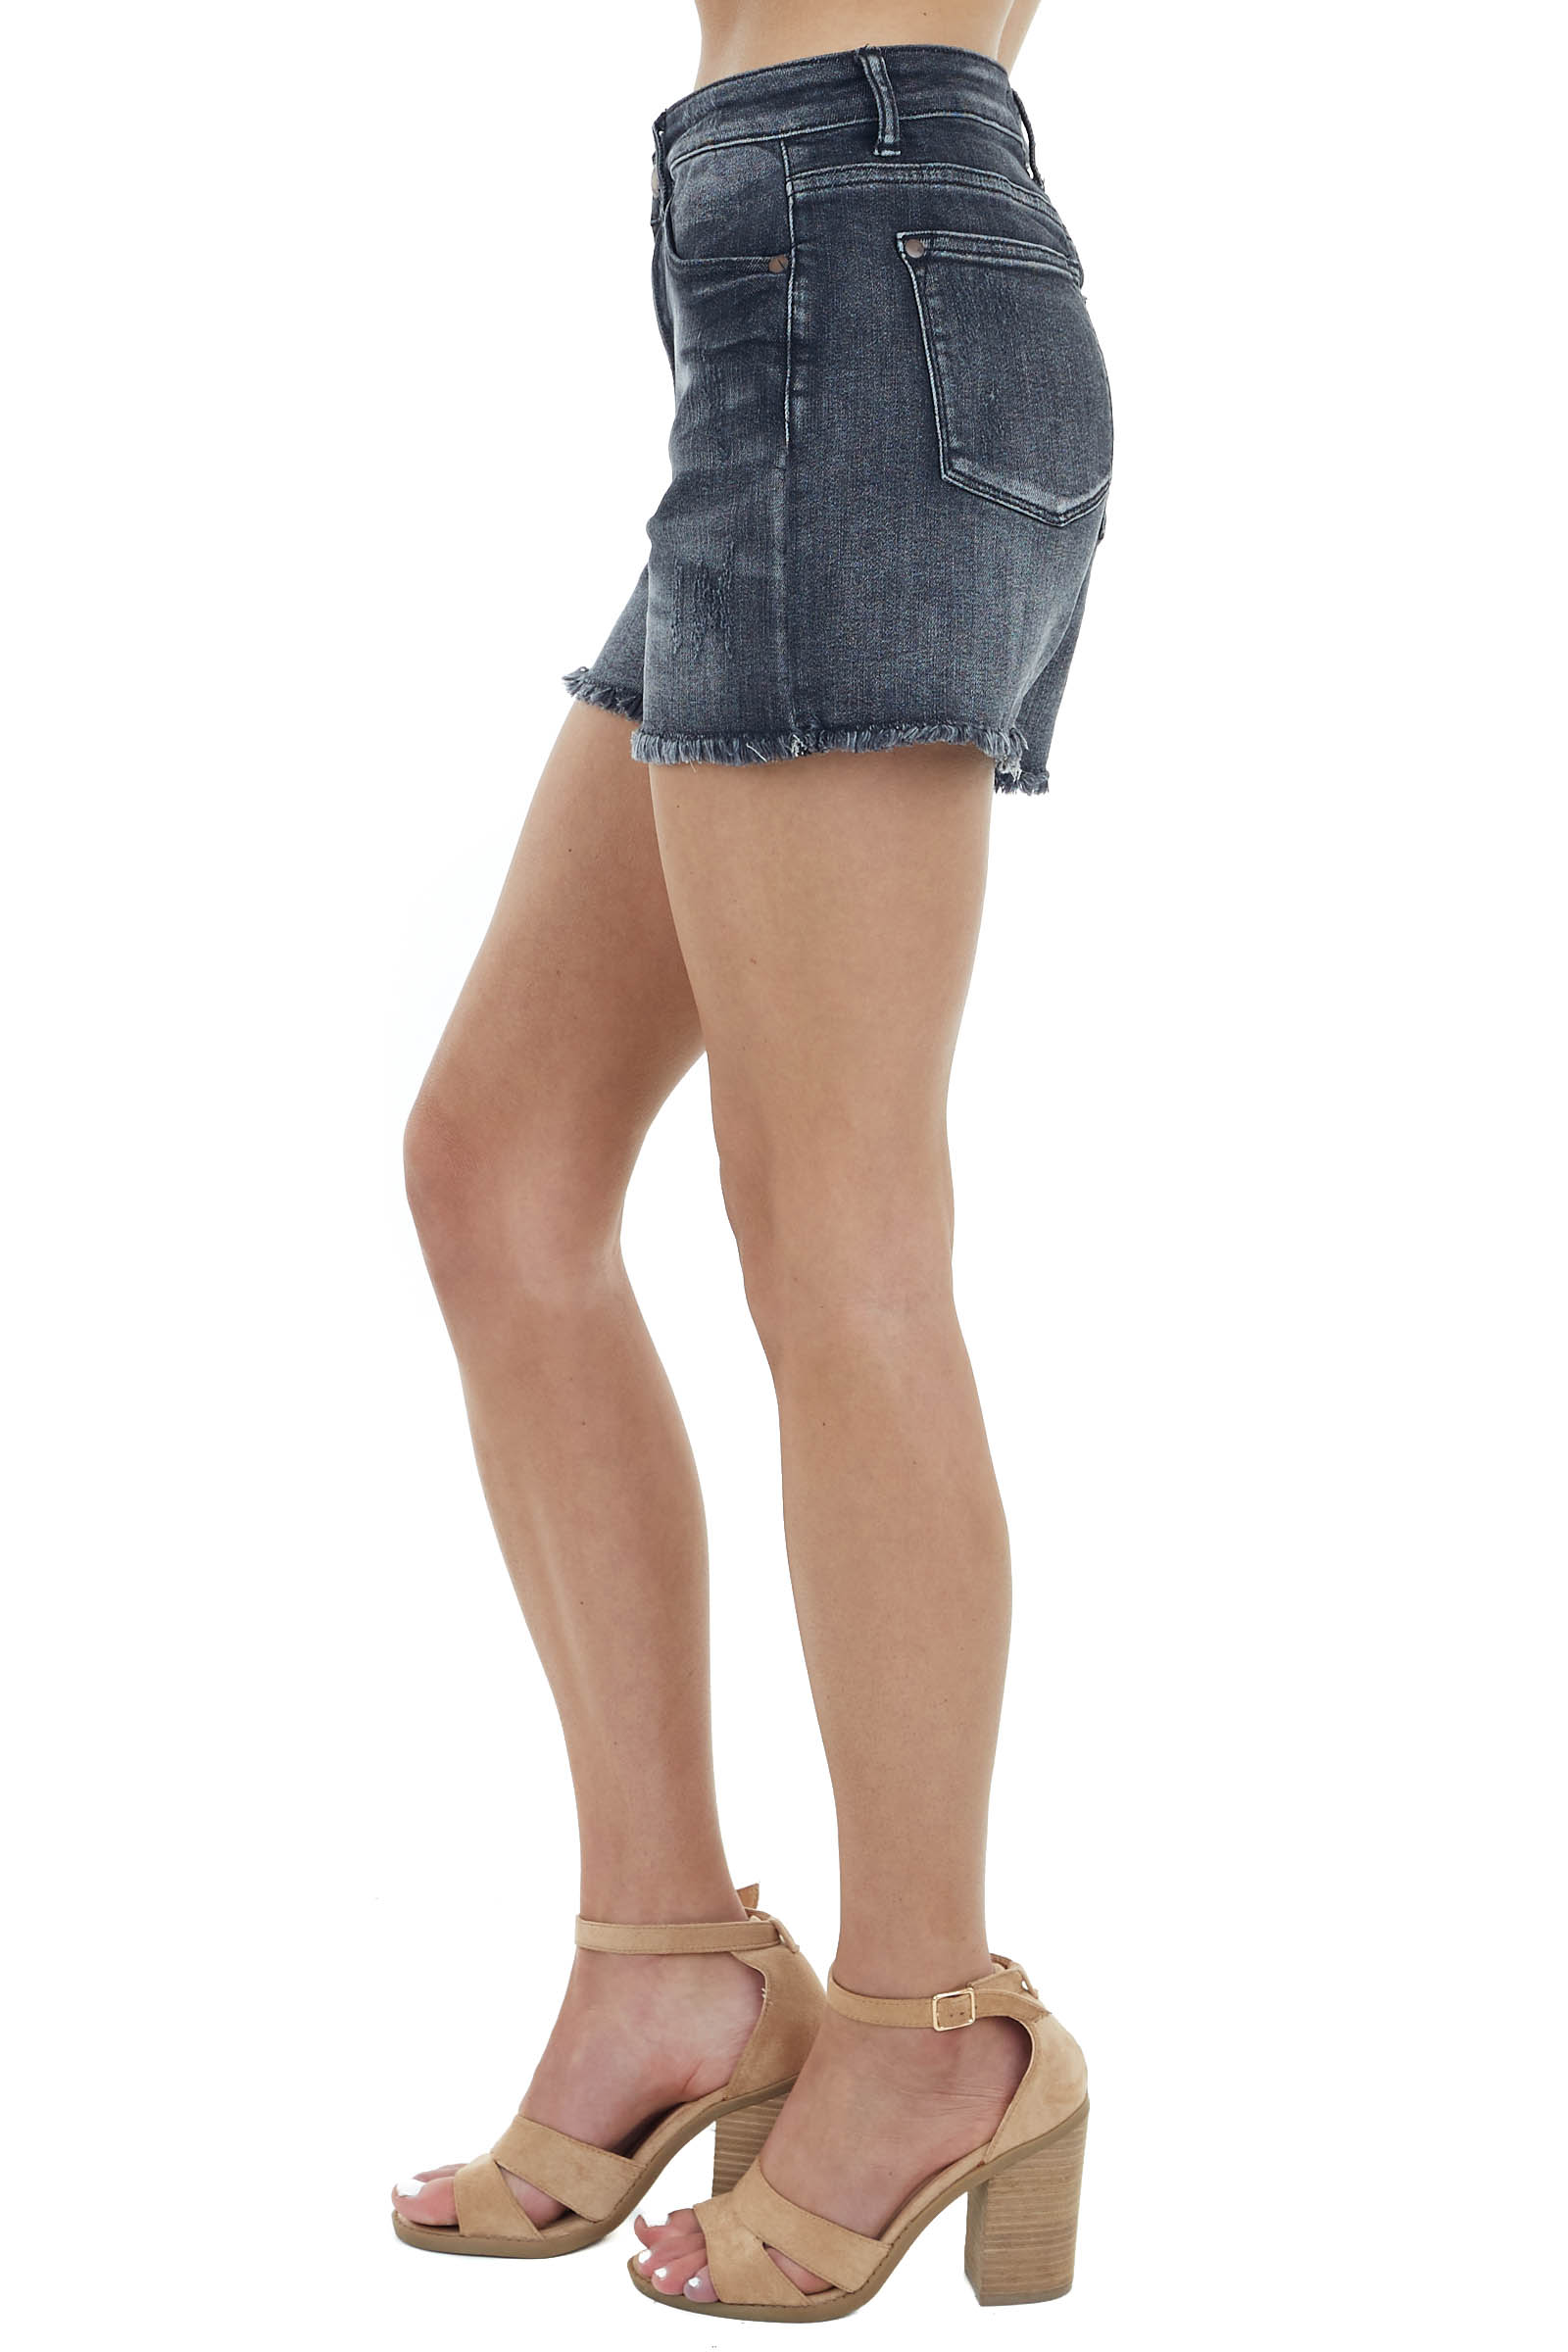 Faded Black High Waisted Distressed Shorts with Frayed Hem